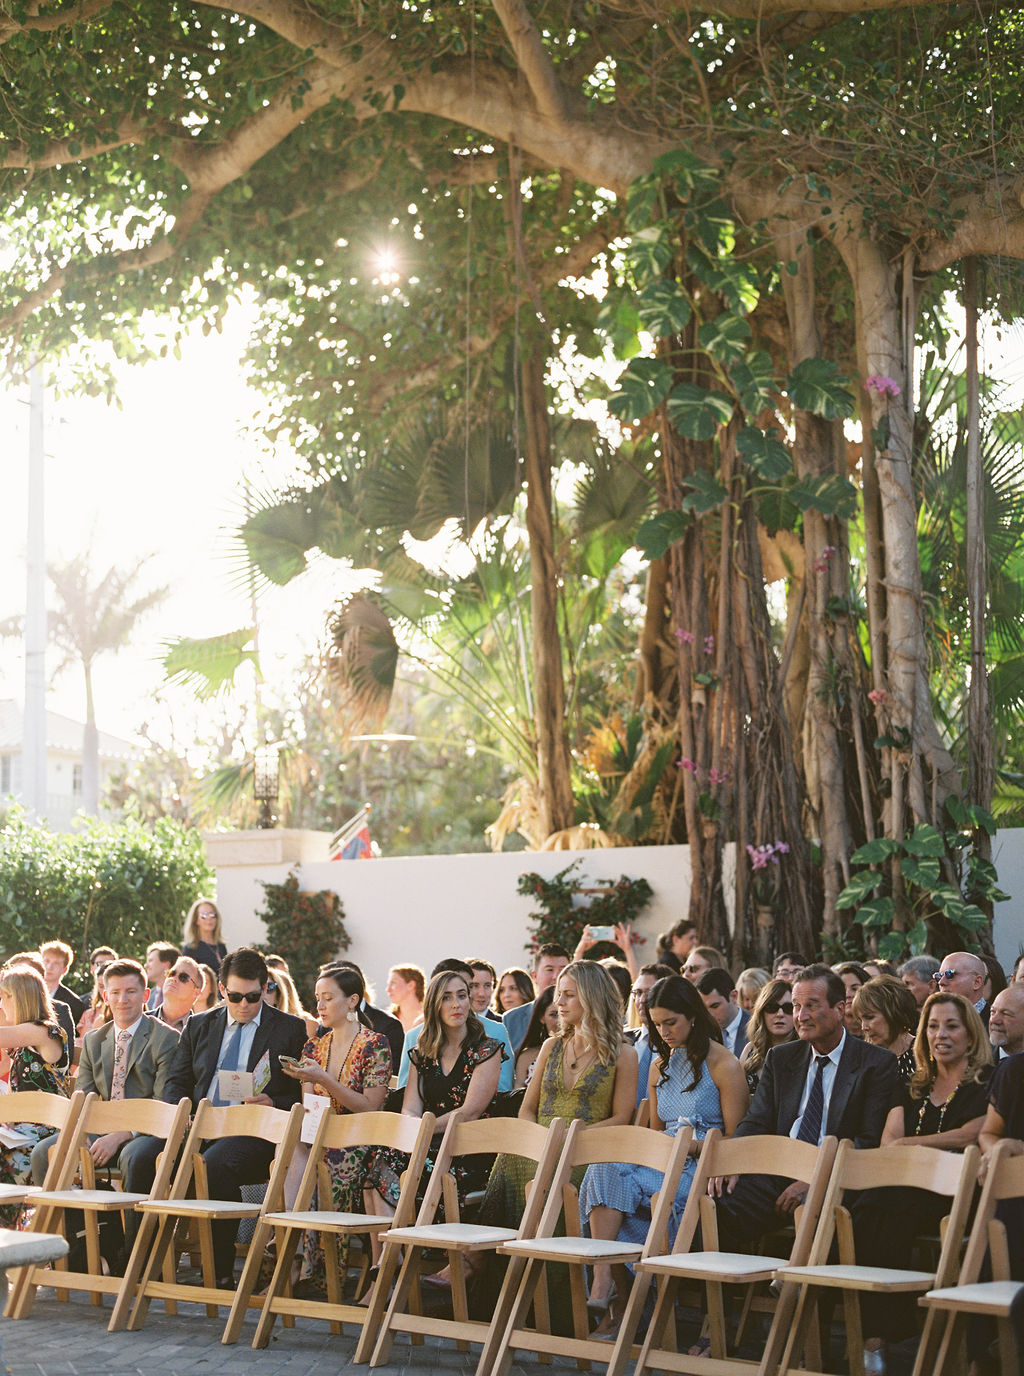 wedding guests sitting in wooden chairs for backyard wedding